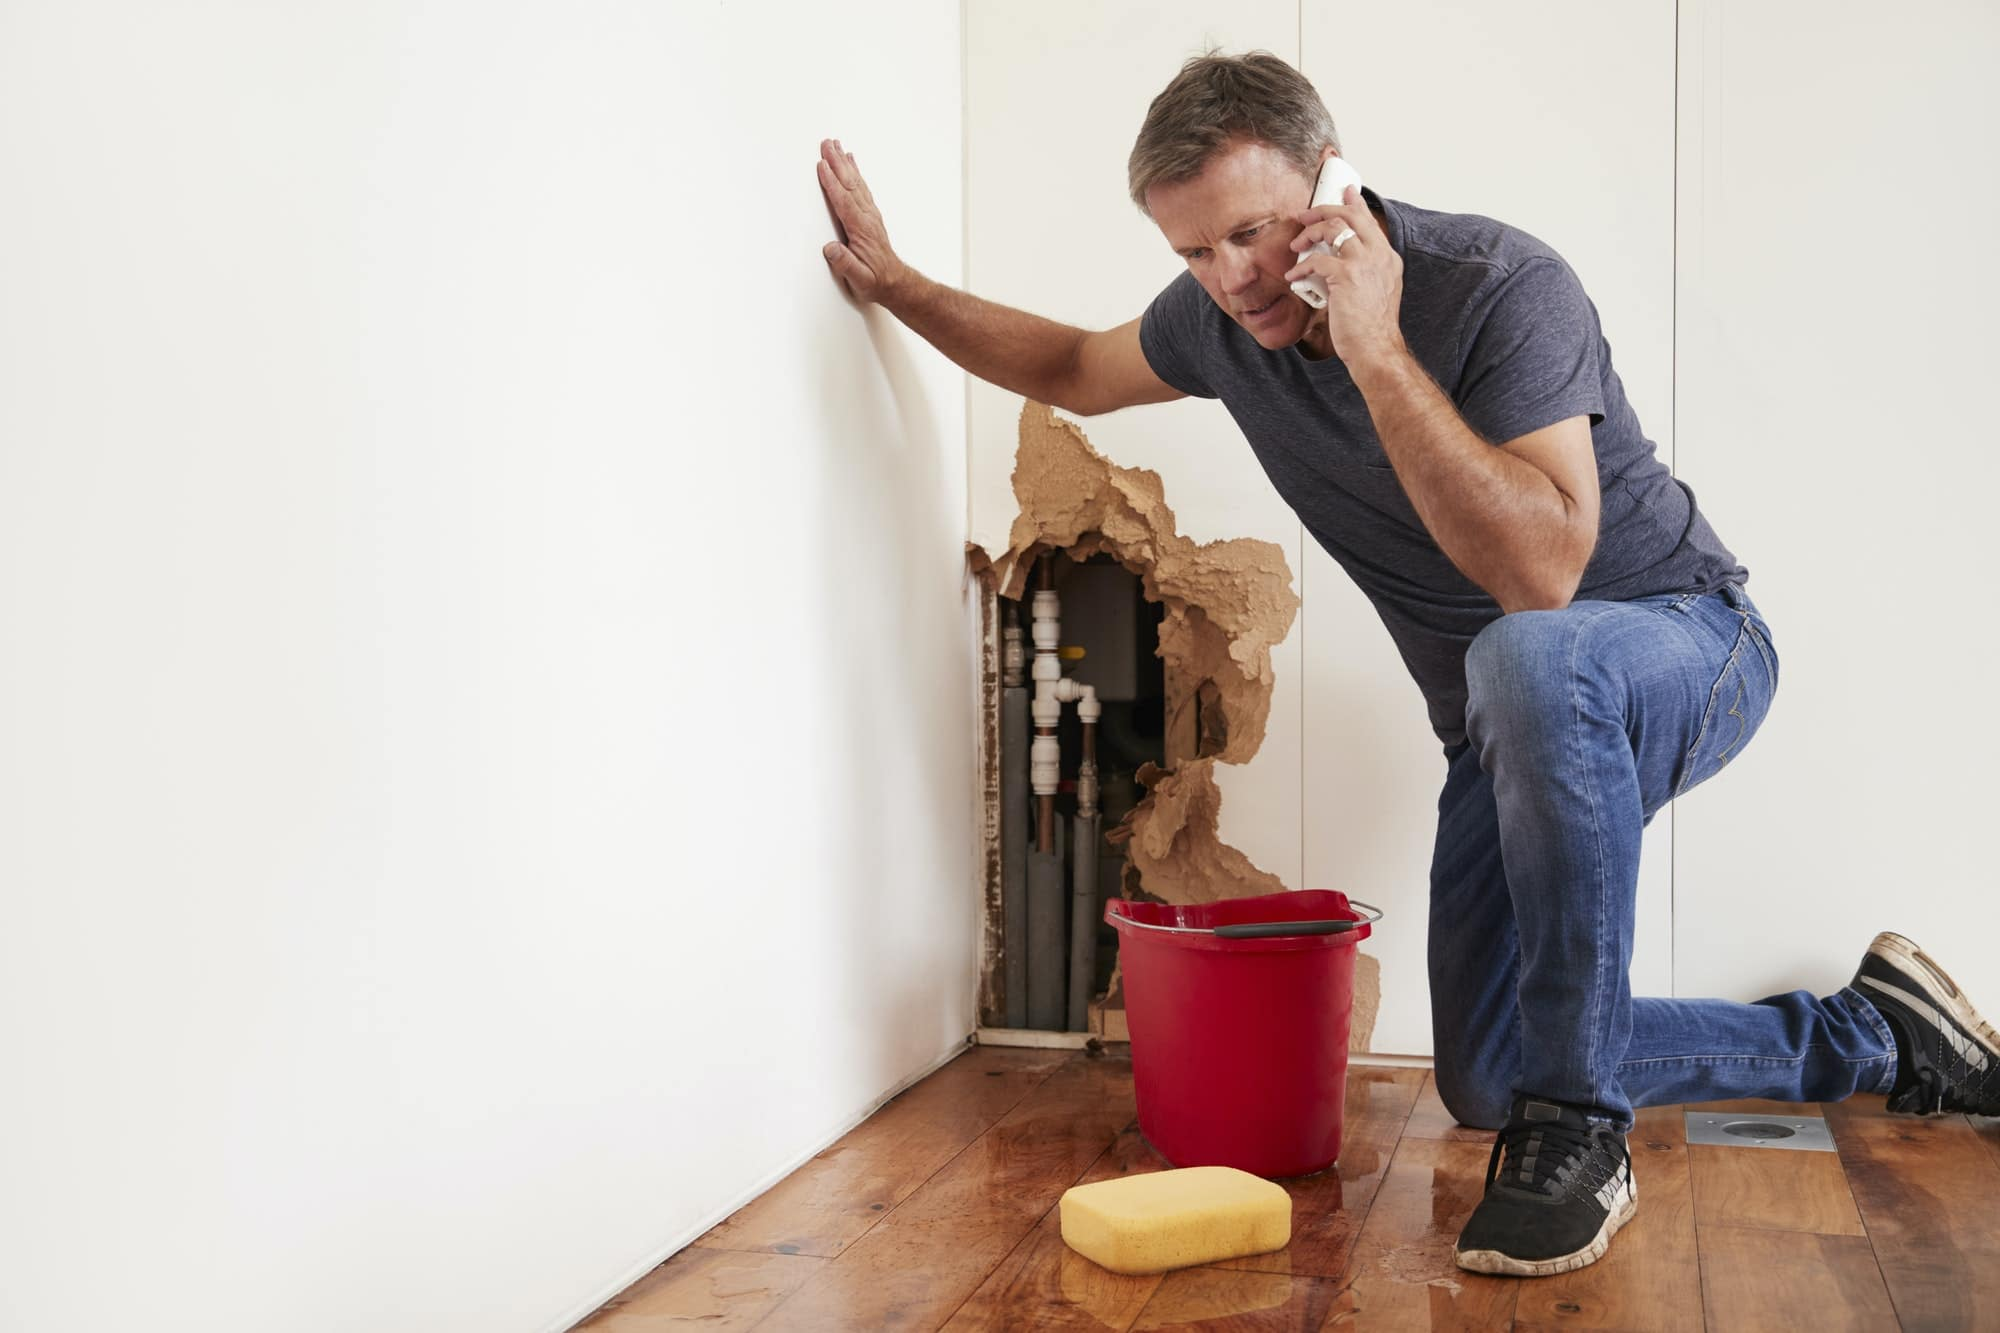 Middle aged man with a burst water pipe phoning for help